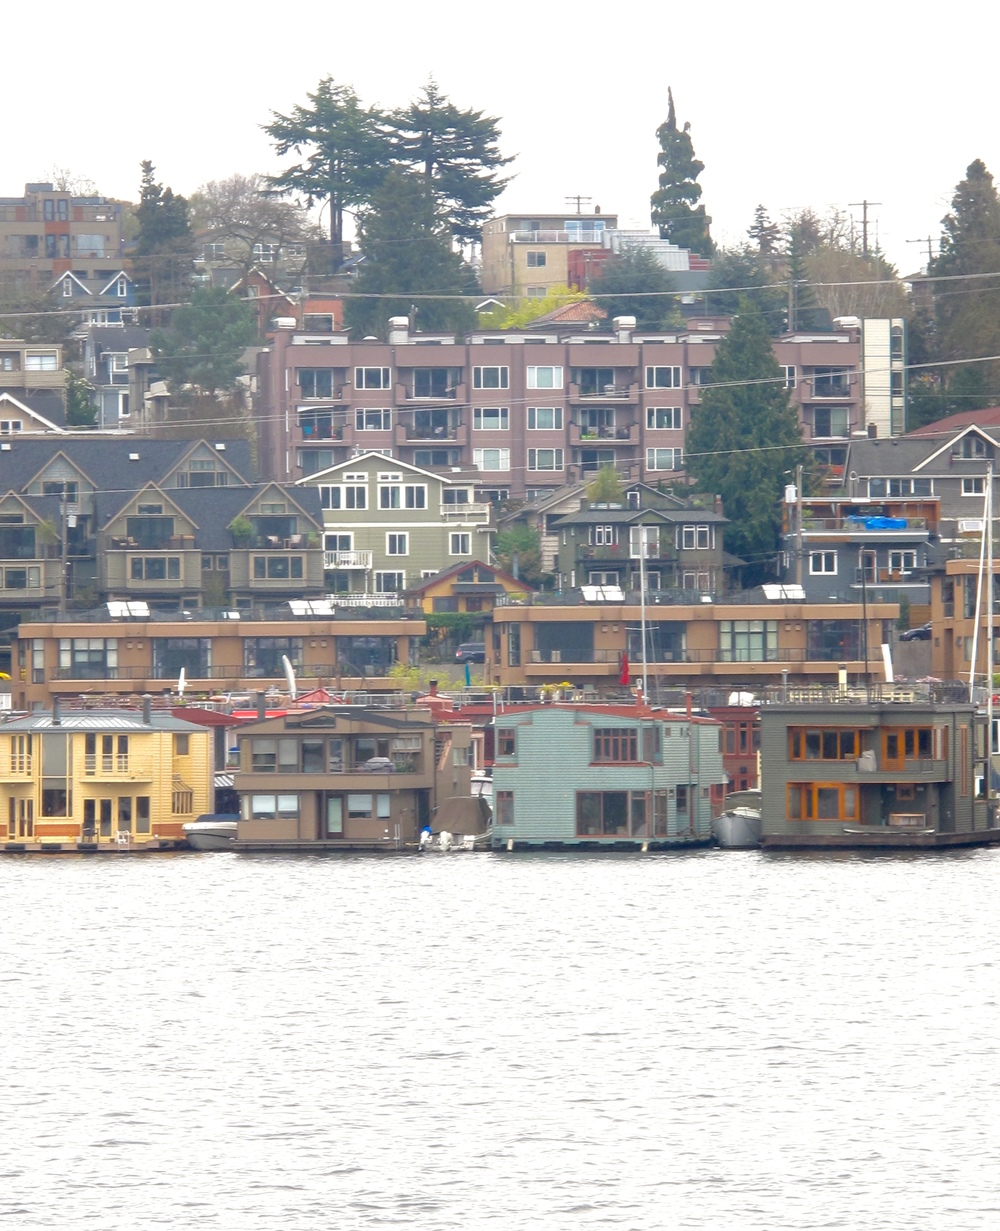 Houseboats on the water, Seattle.